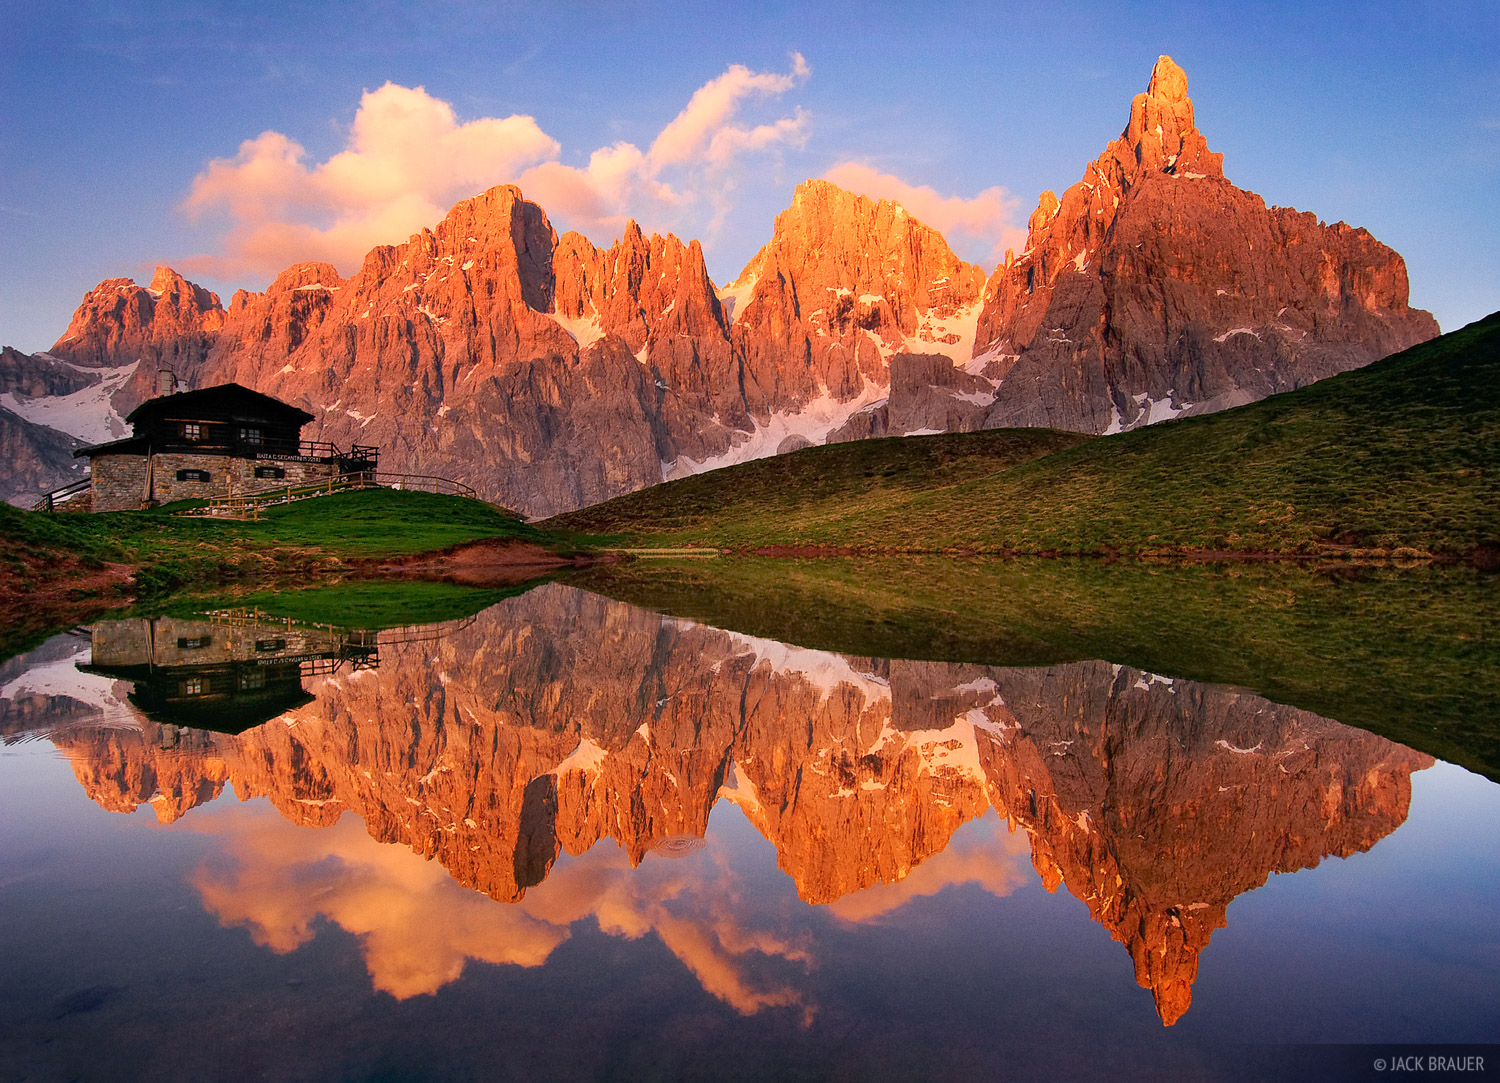 Baita Segantini, reflection, San Martino, Dolomites, Italy, photo